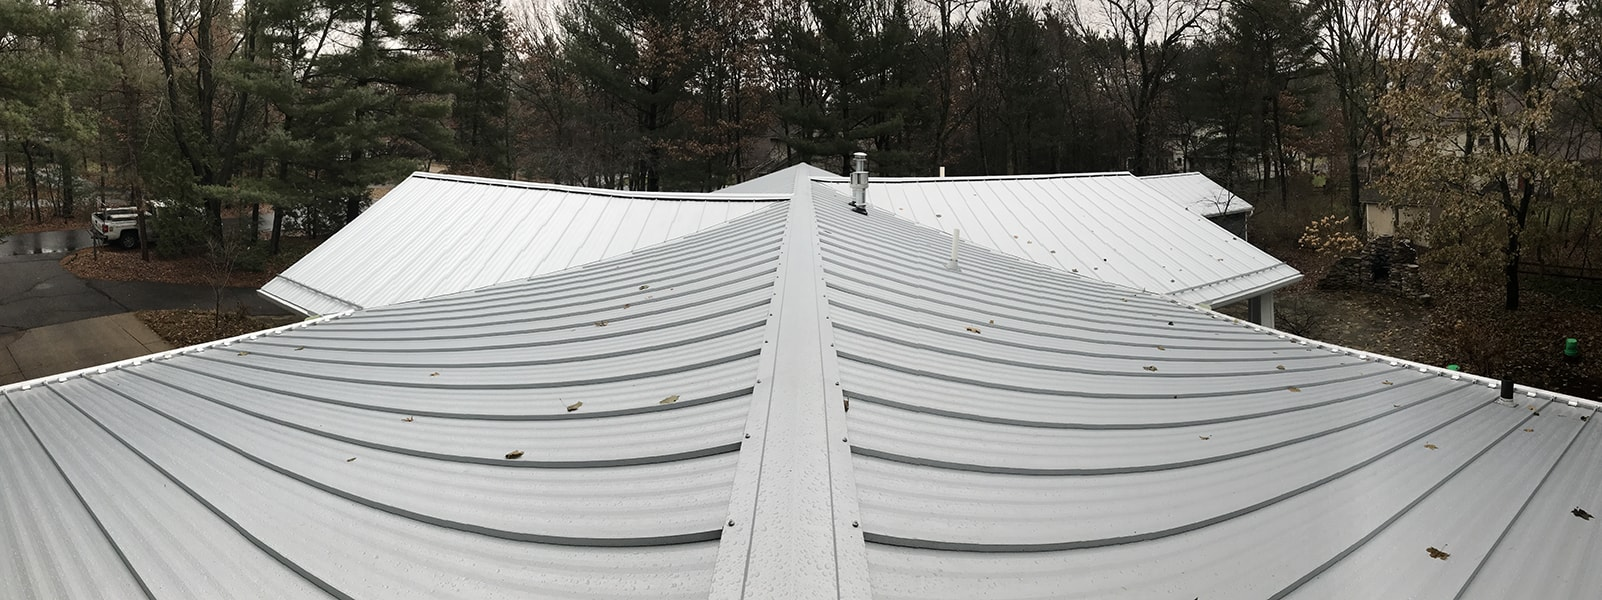 Standing Seam Metal Roofing In Stevens Point, WI   Roof